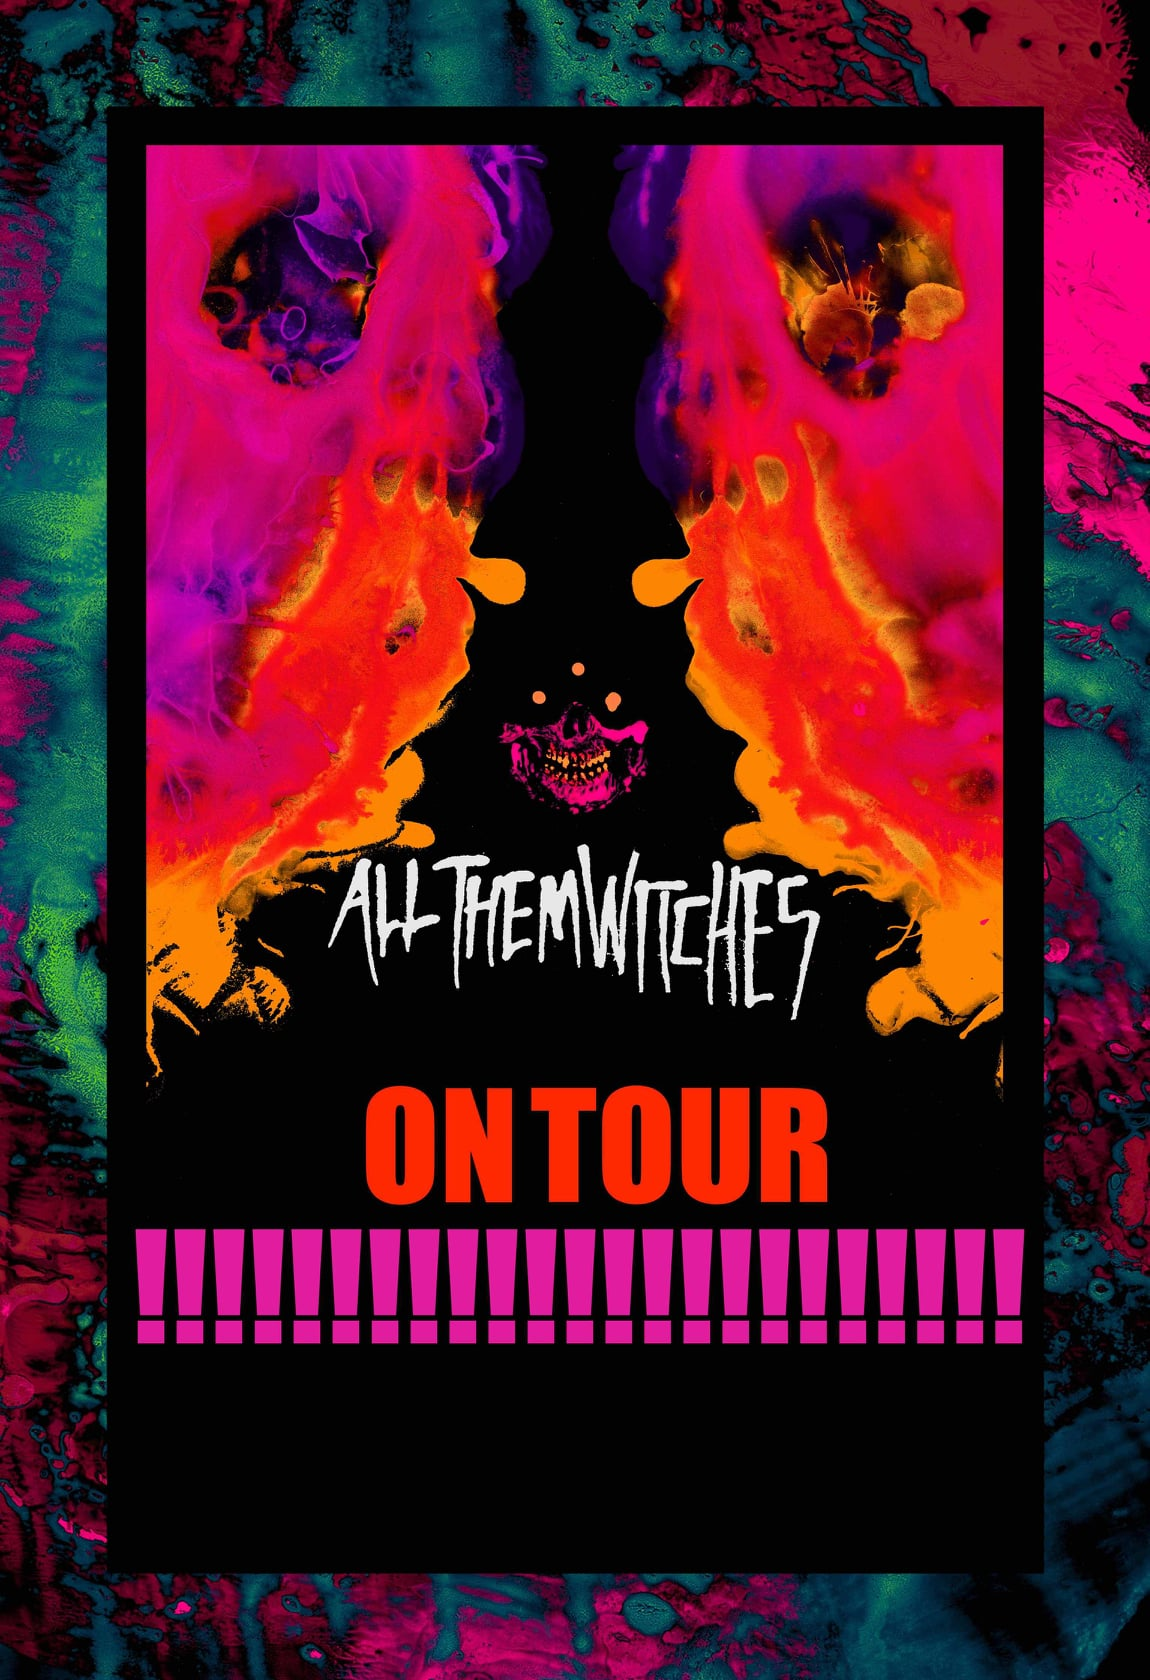 all them witches tour